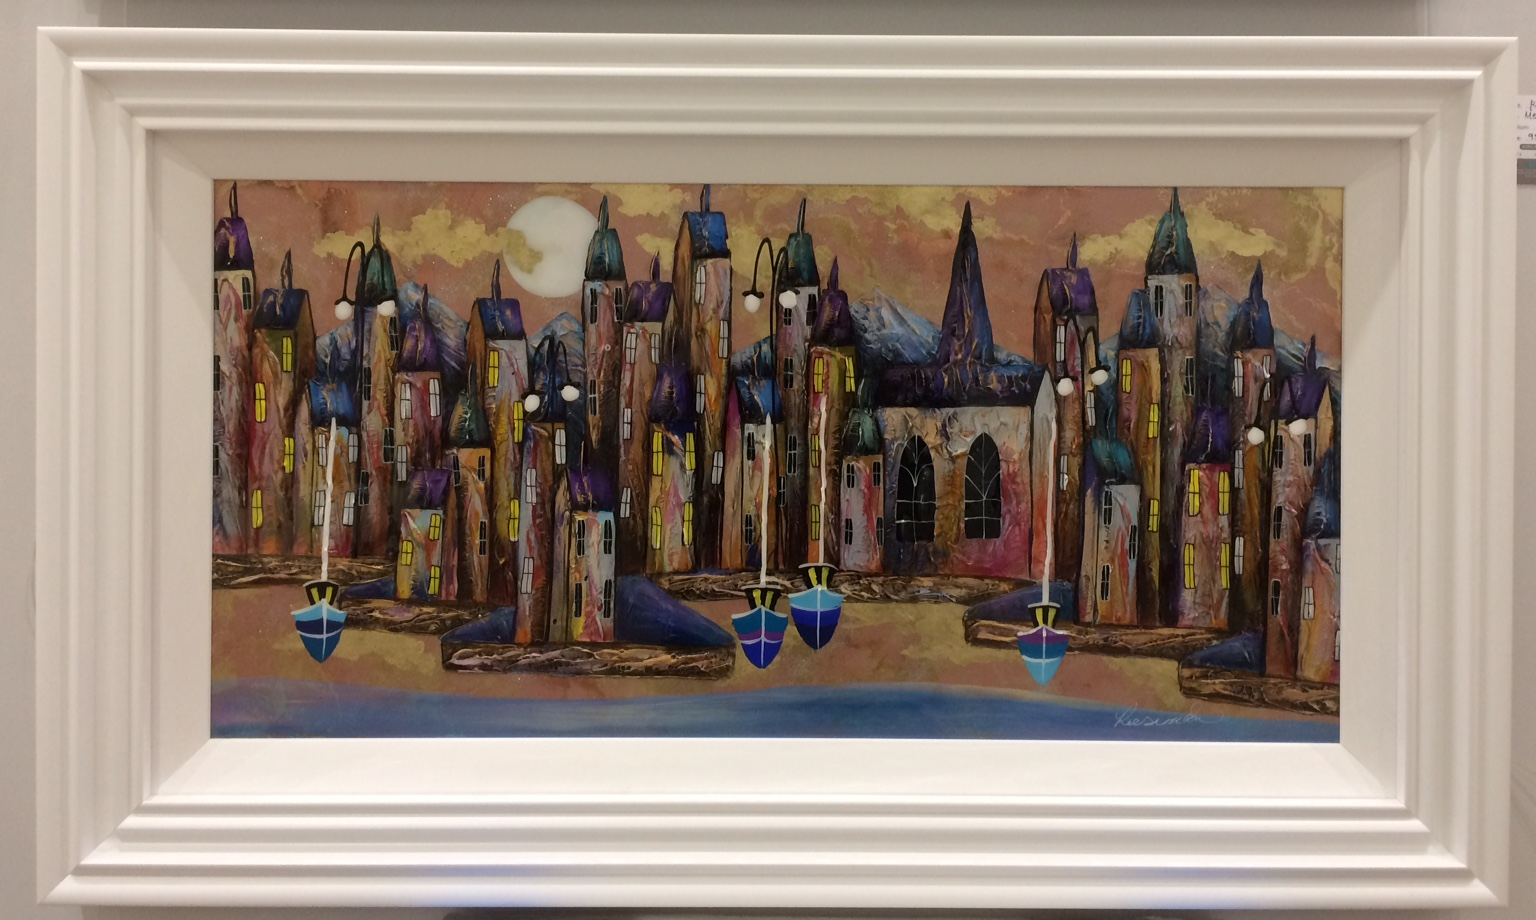 Metallic Night Harbour I (36 x 18) by Rozanne Bell